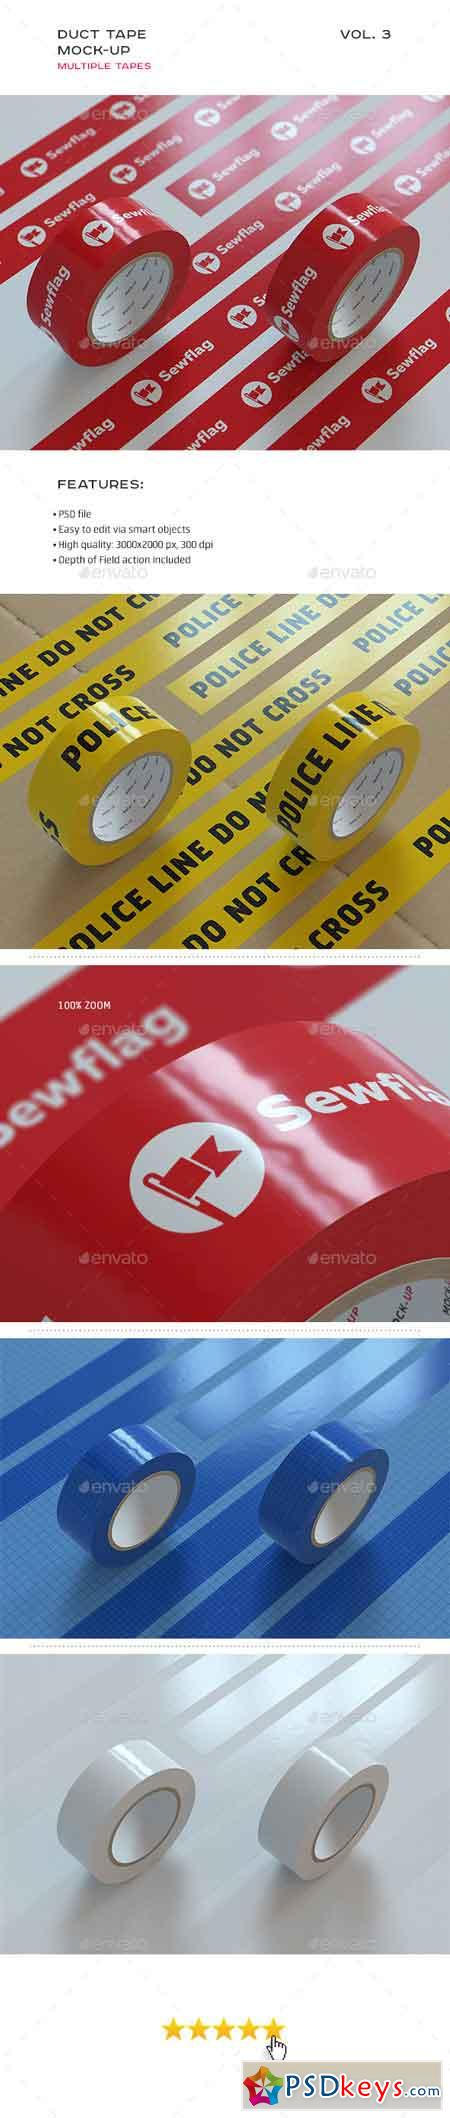 Duct Tape Mock-up vol. 3 17709172